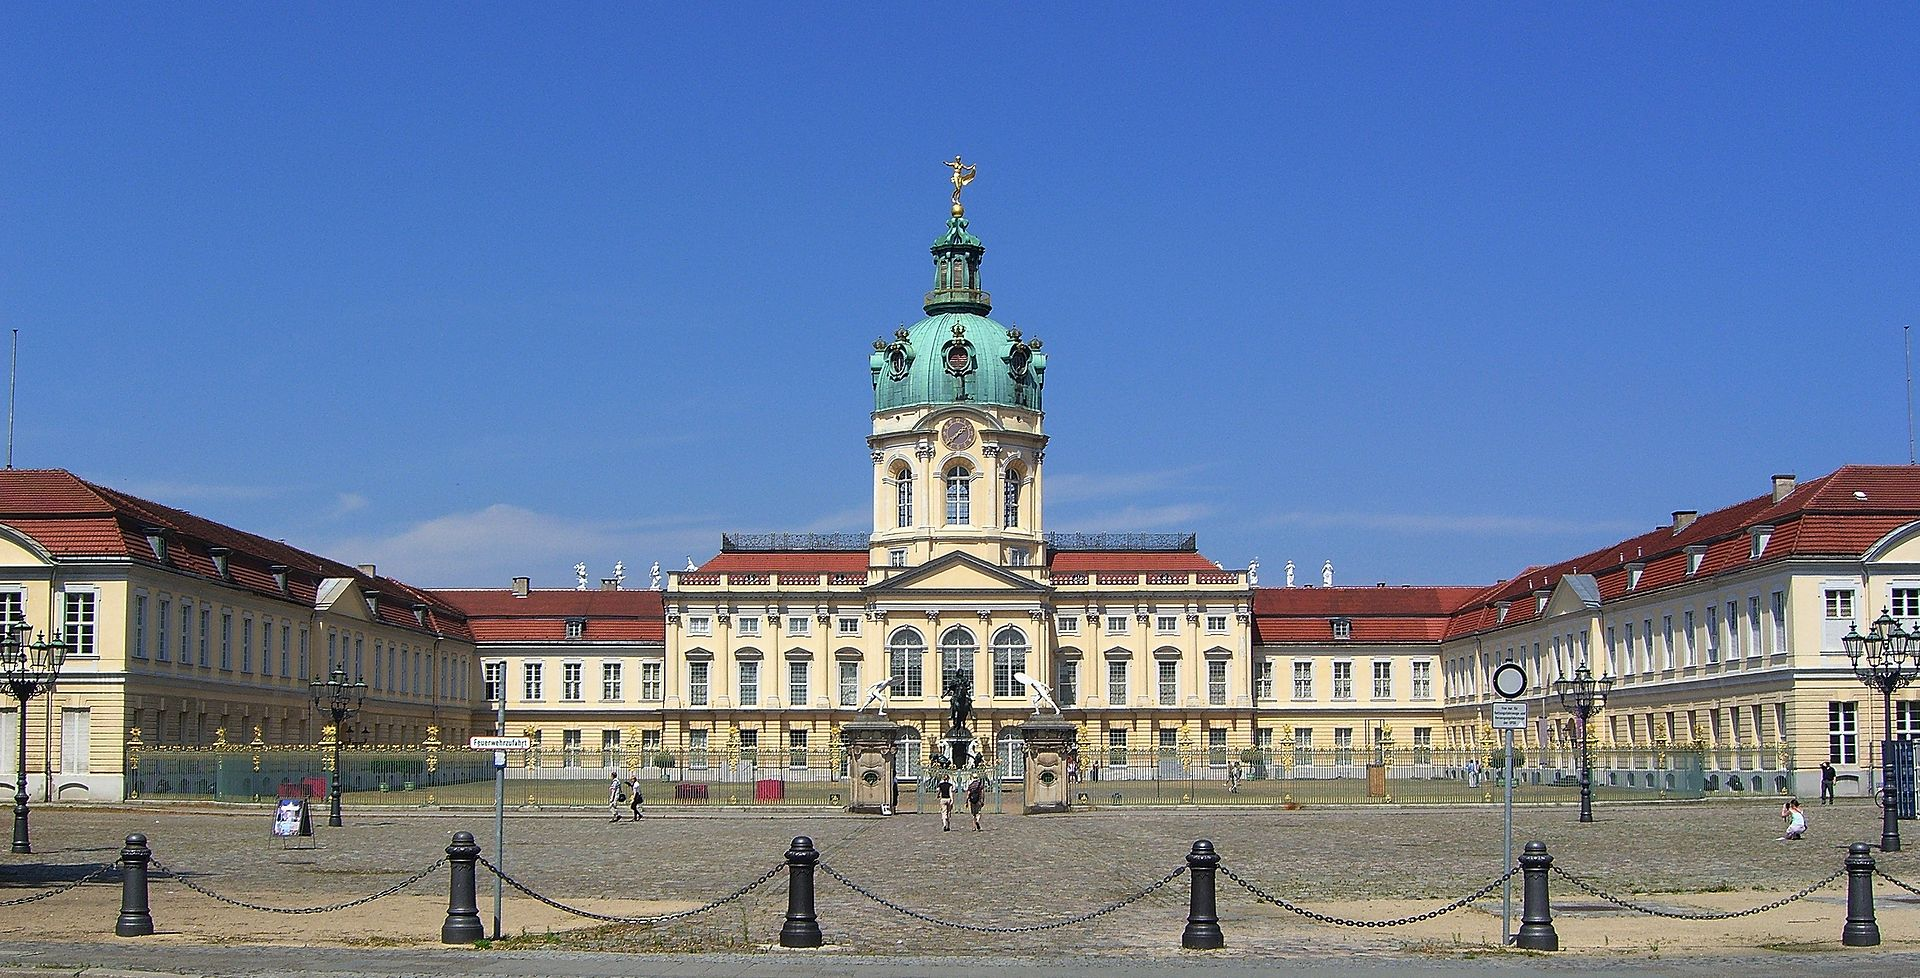 https://upload.wikimedia.org/wikipedia/commons/thumb/3/3a/Schloss_Charlottenburg_Berlin_2007.jpg/1920px-Schloss_Charlottenburg_Berlin_2007.jpg